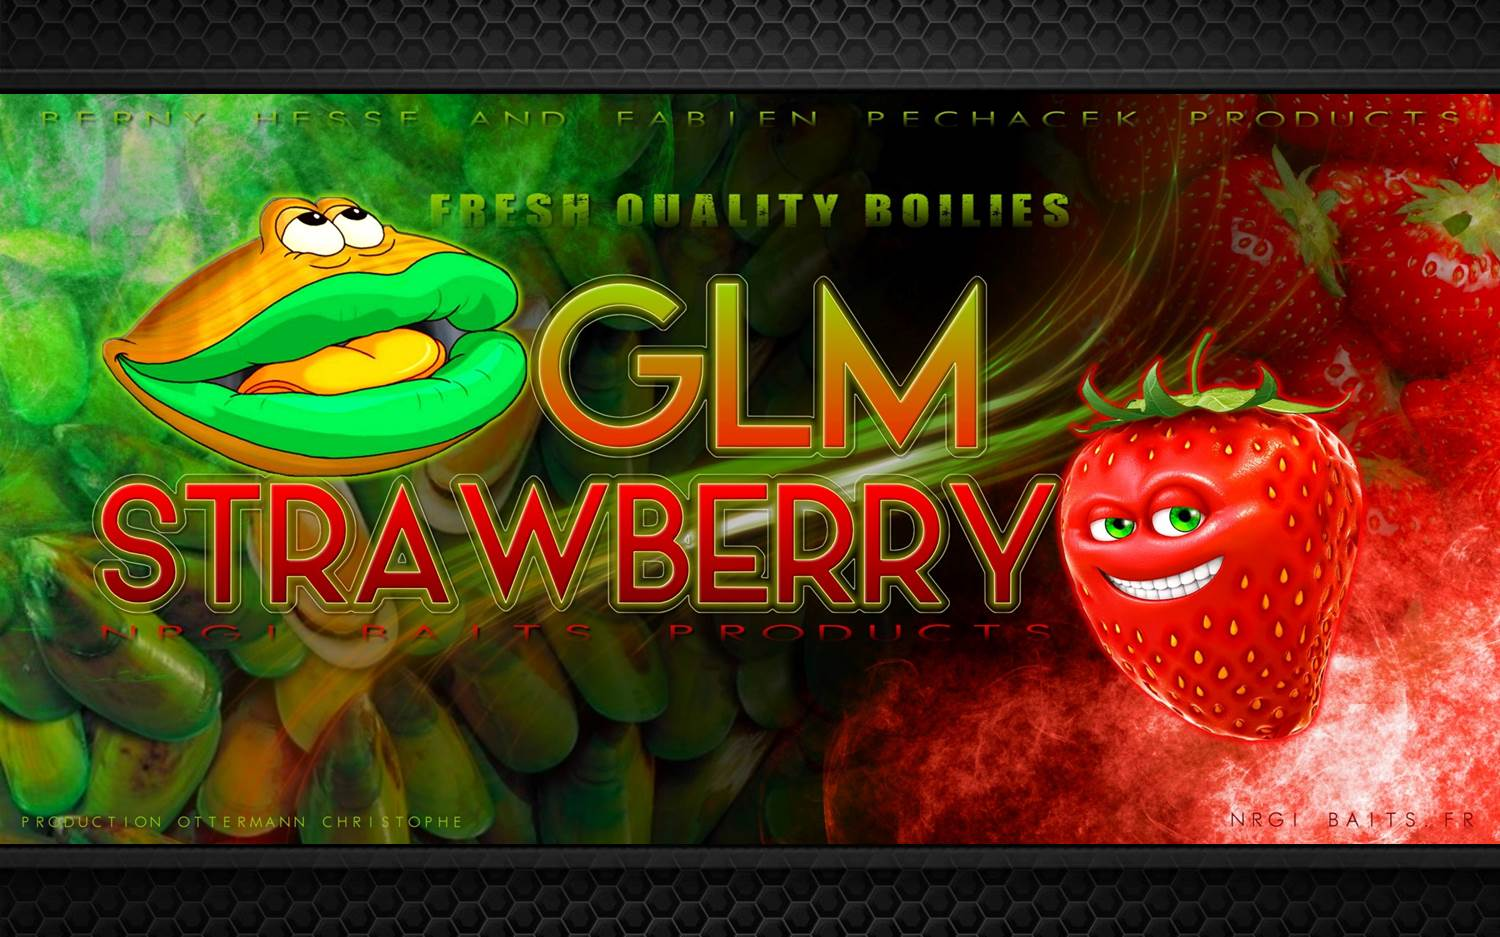 Gamme GLM Strawberry